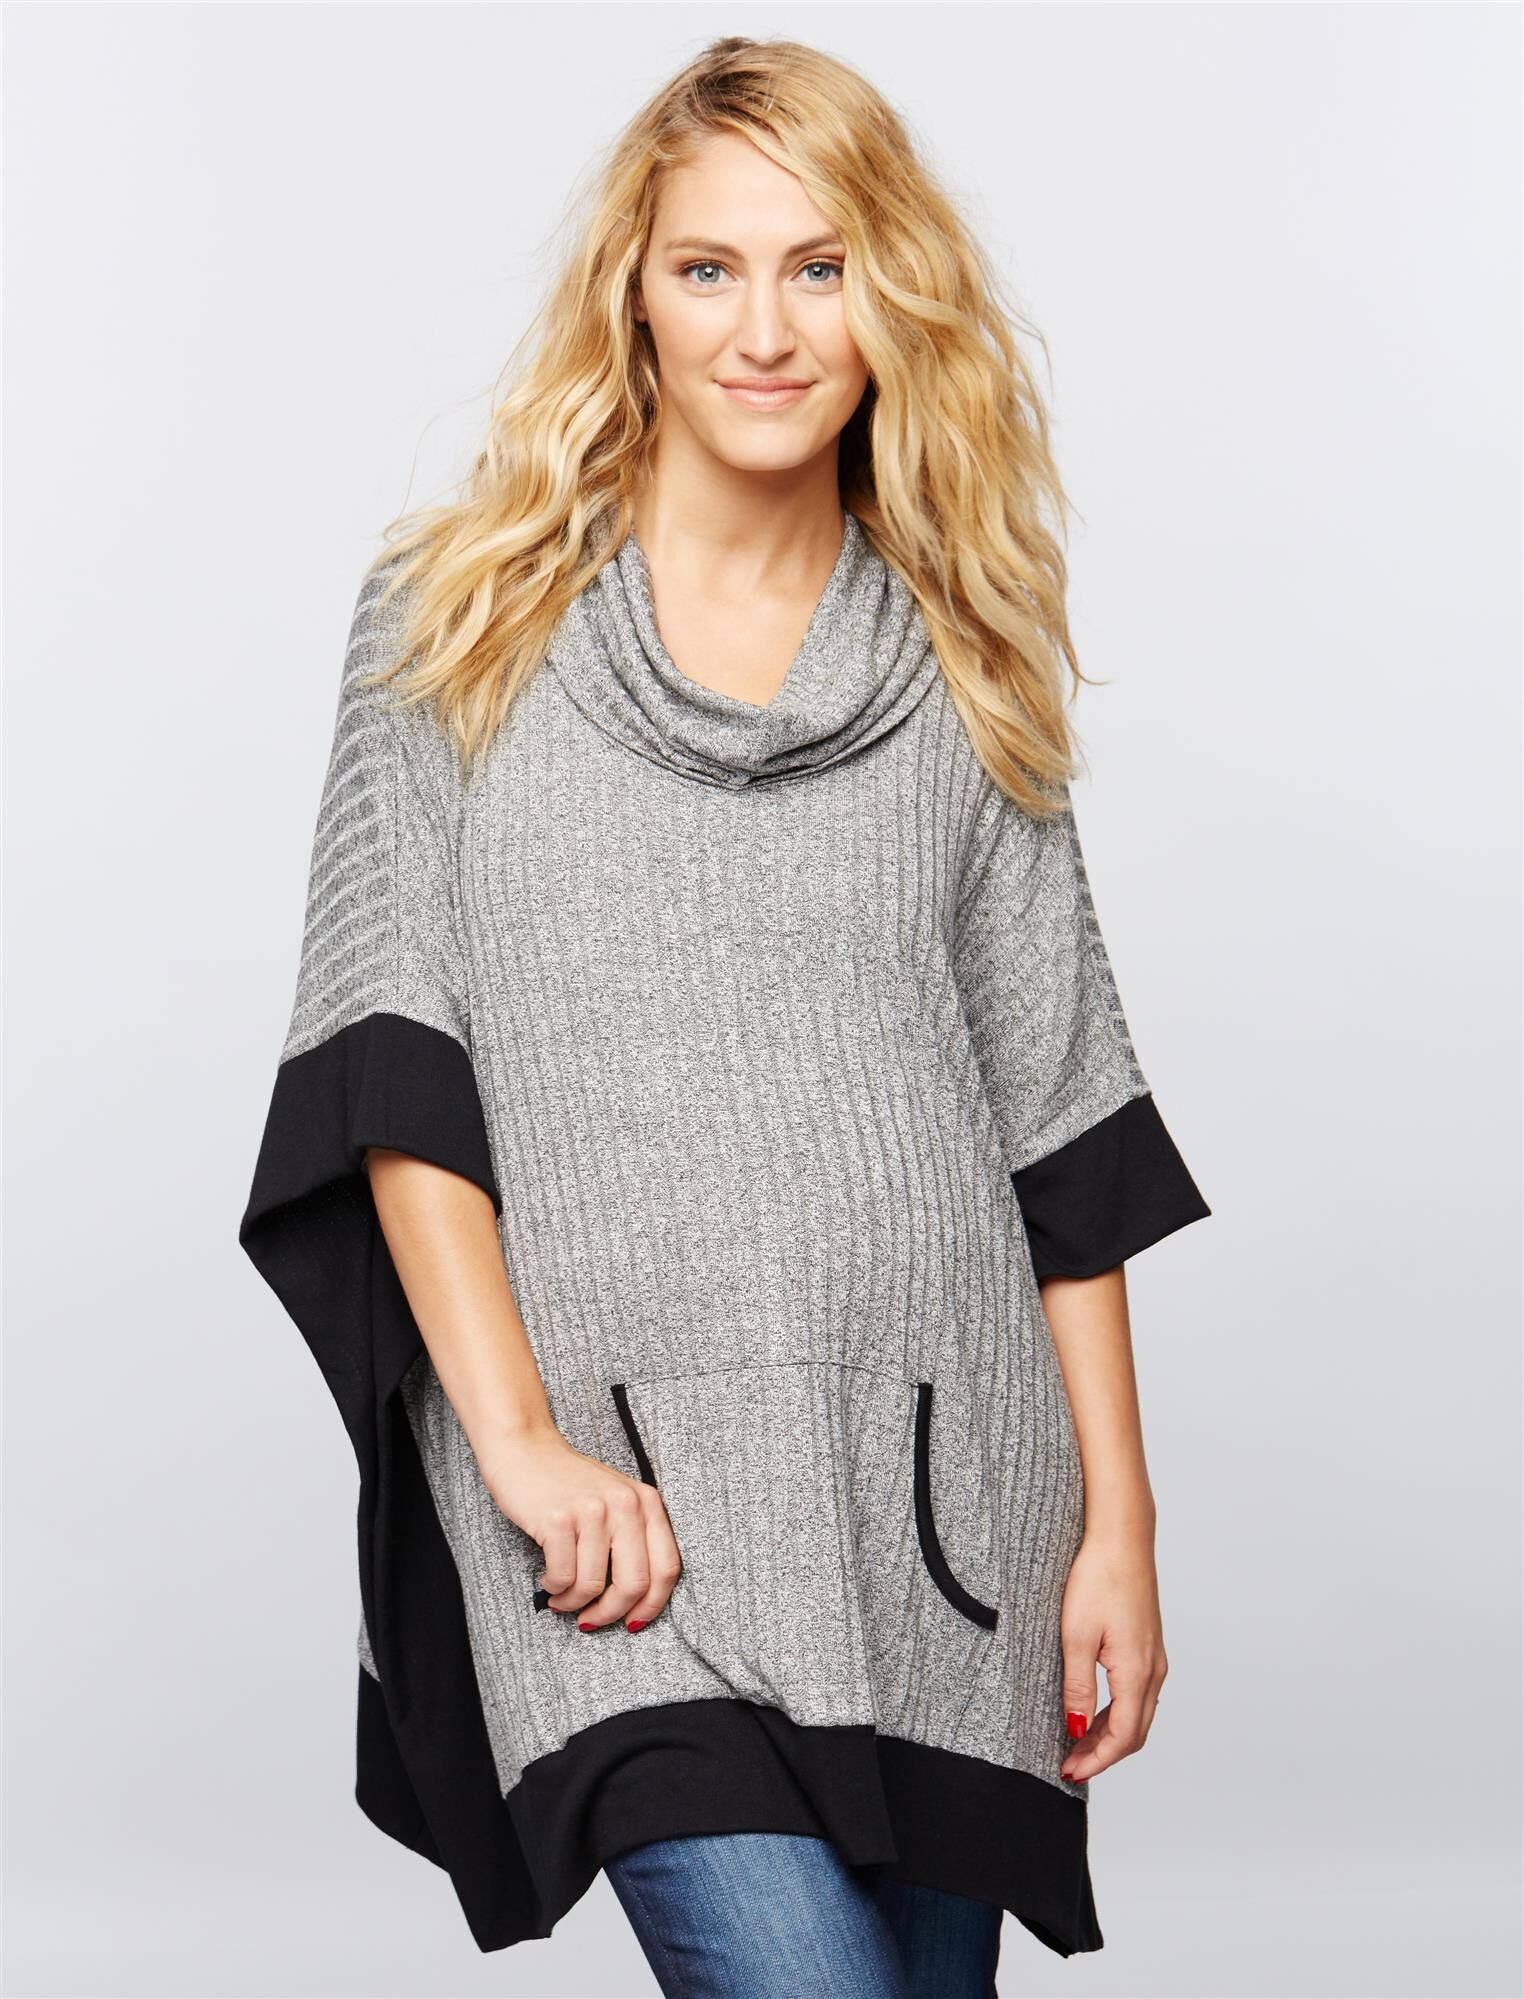 Ribbed Cowl Maternity Poncho